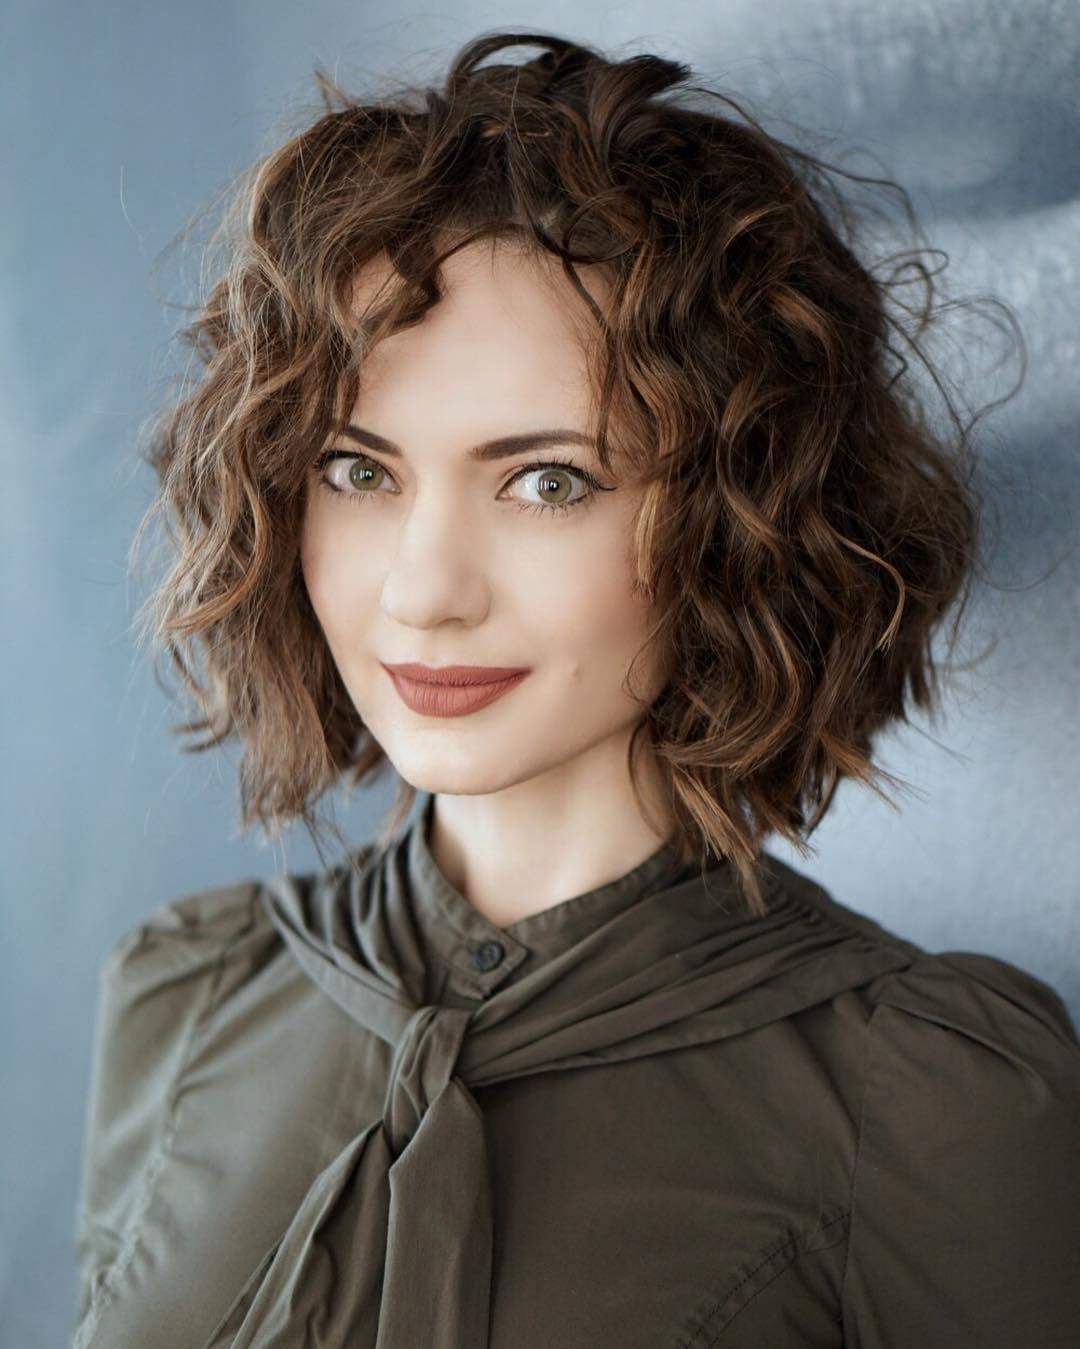 22 Stylish Styles for Curly Bob Hairstyles - Fashion 2D